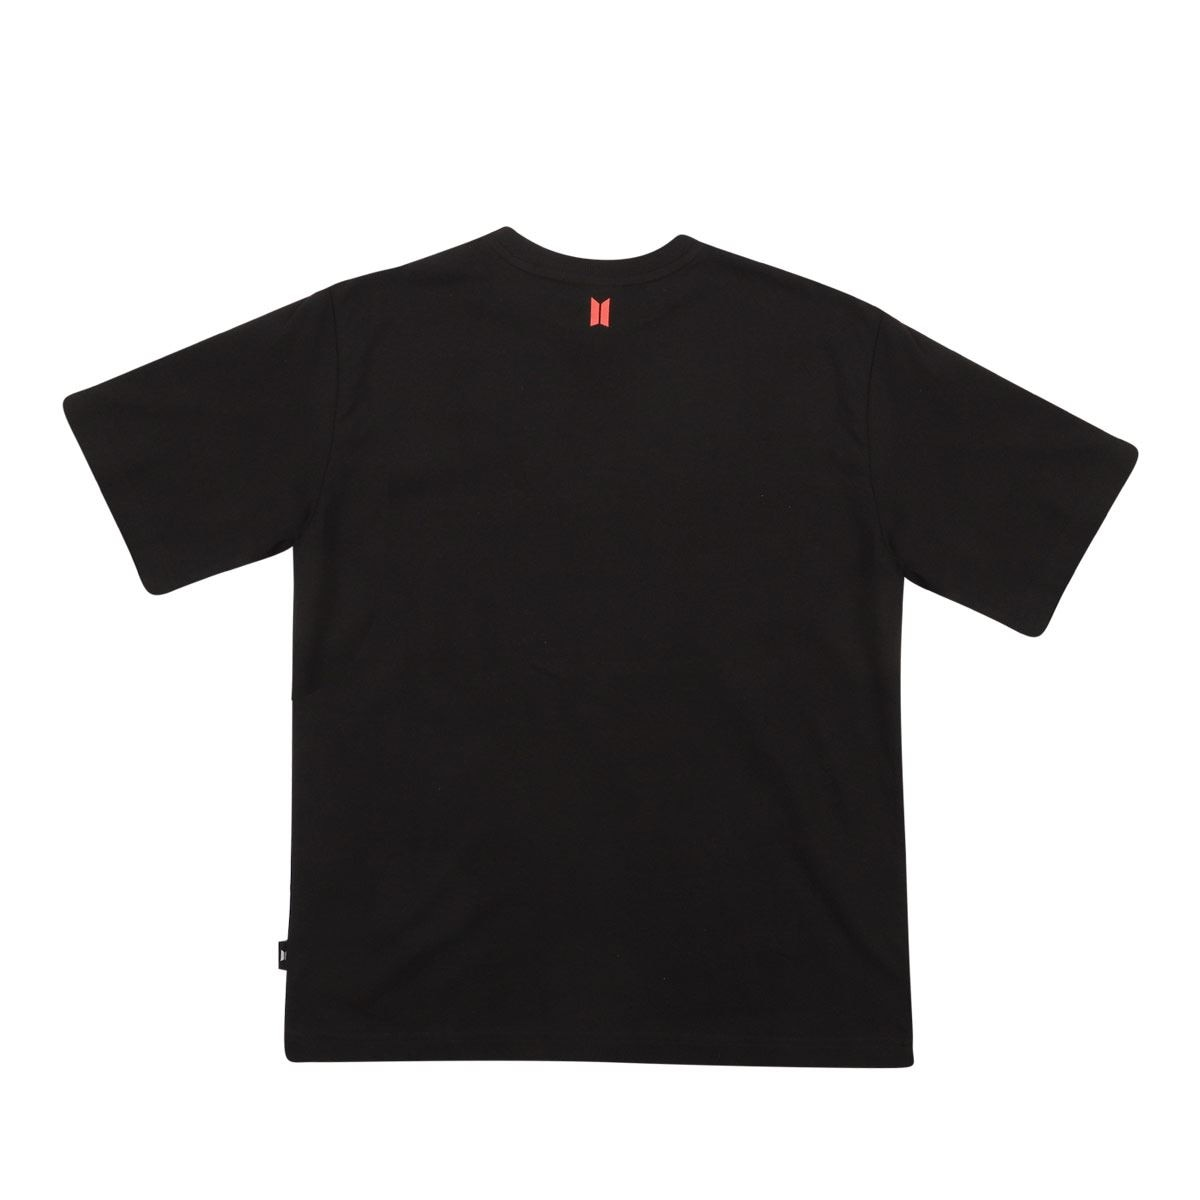 Camiseta Ciudad - negro / City Tee - black